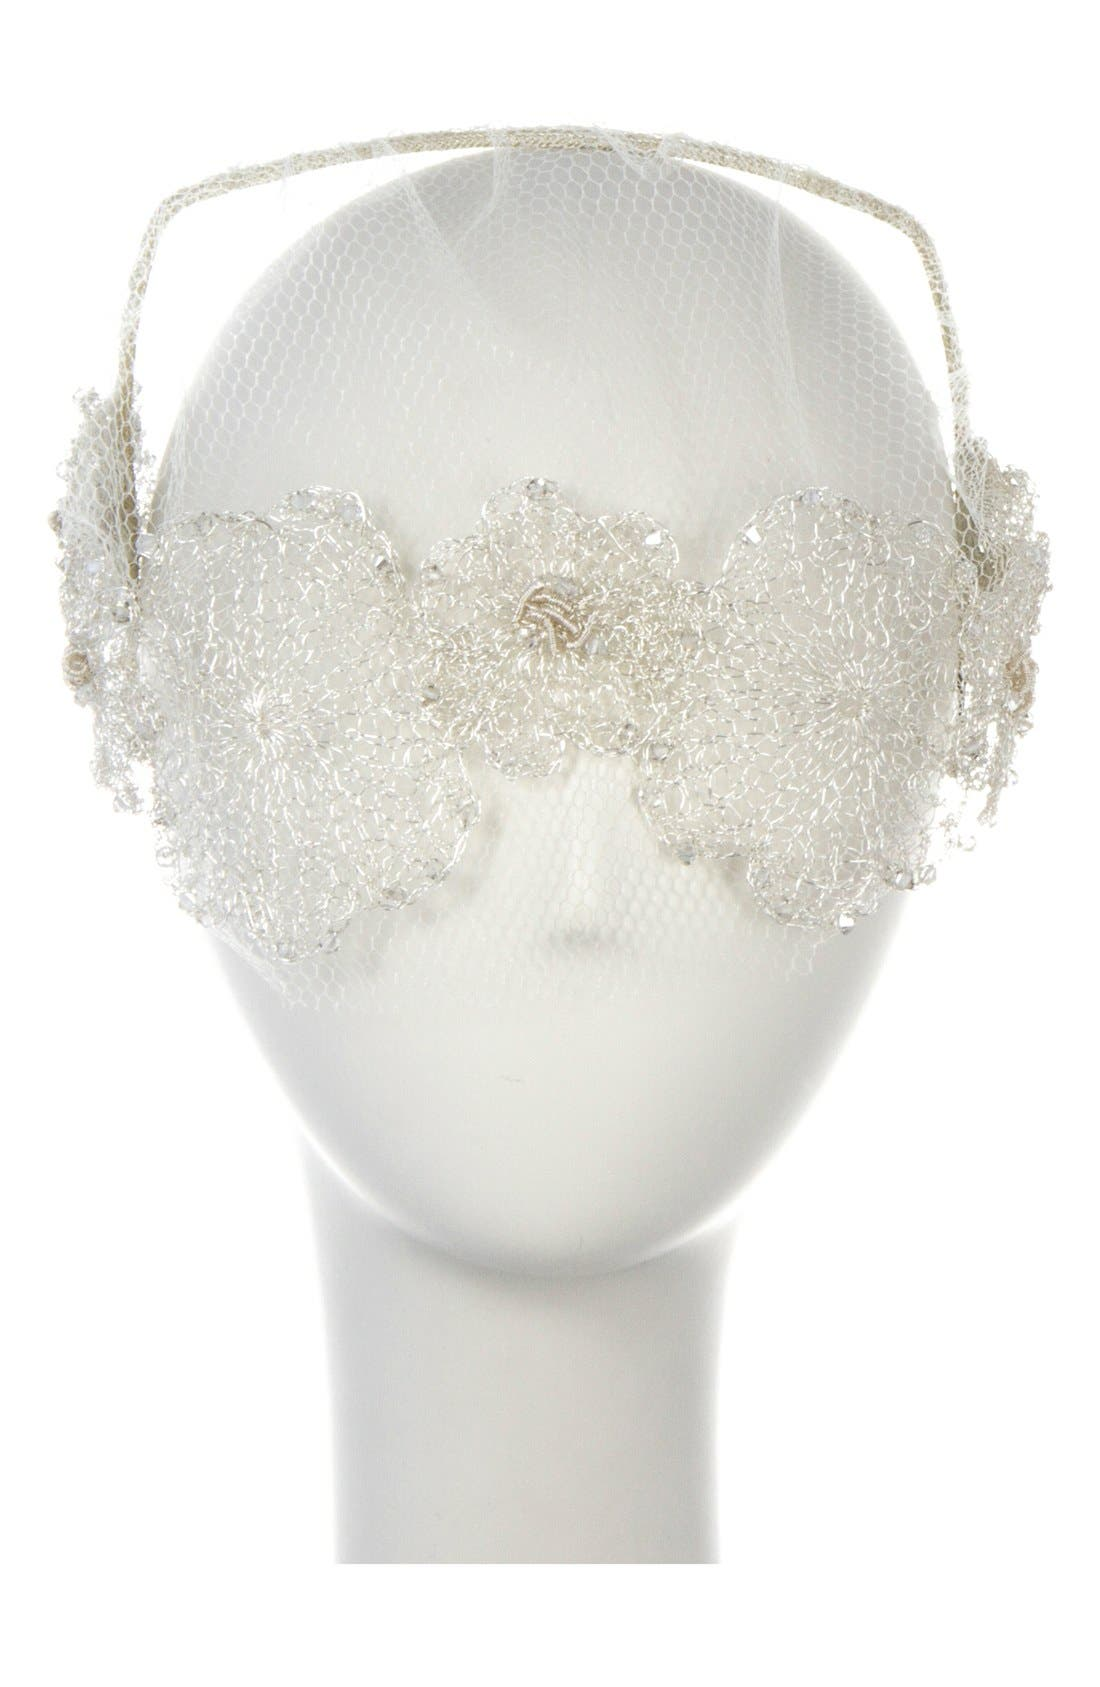 Alternate Image 1 Selected - Colette Malouf Headband with Floral Tulle Veil